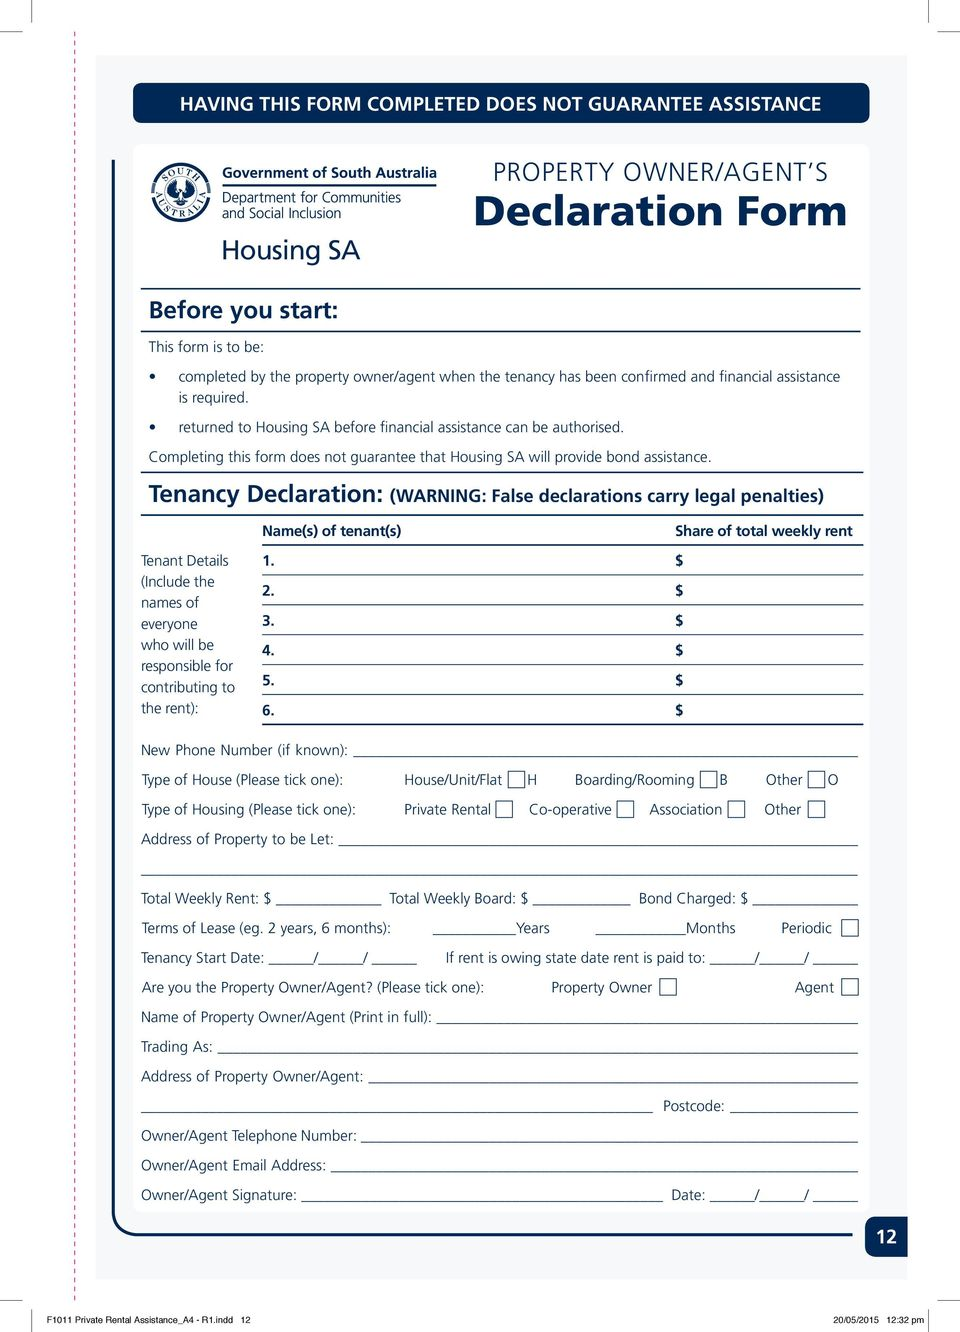 Completing this form does not guarantee that Housing SA will provide bond assistance.